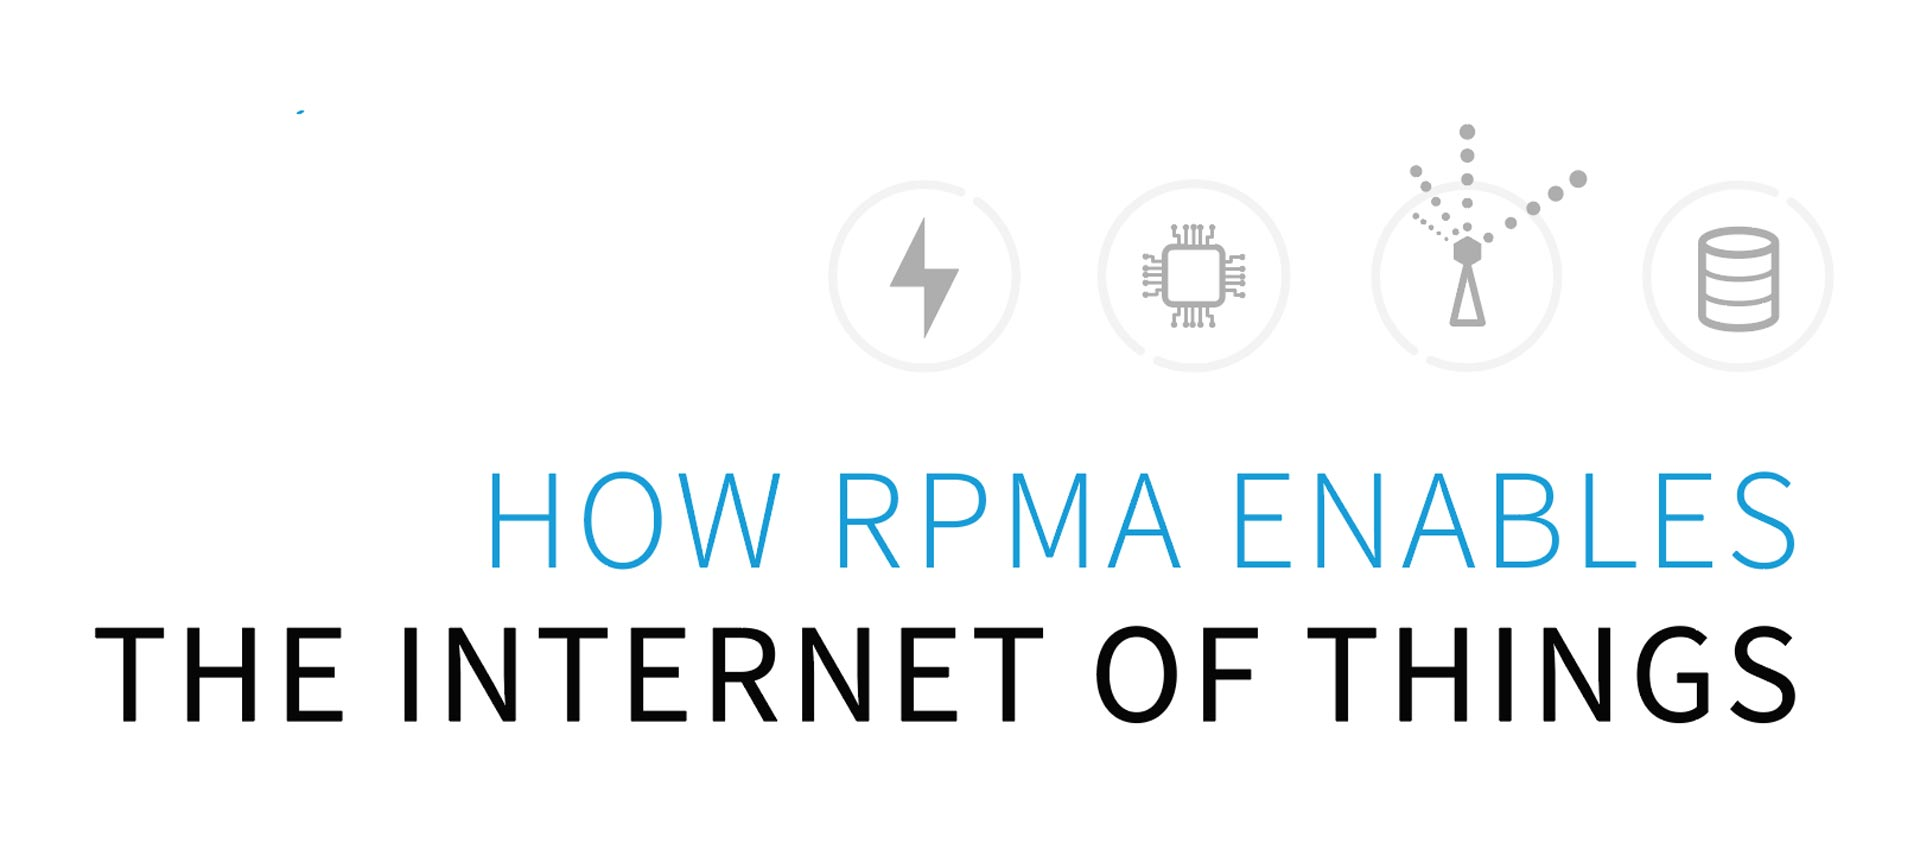 how rpma enables the internet of things